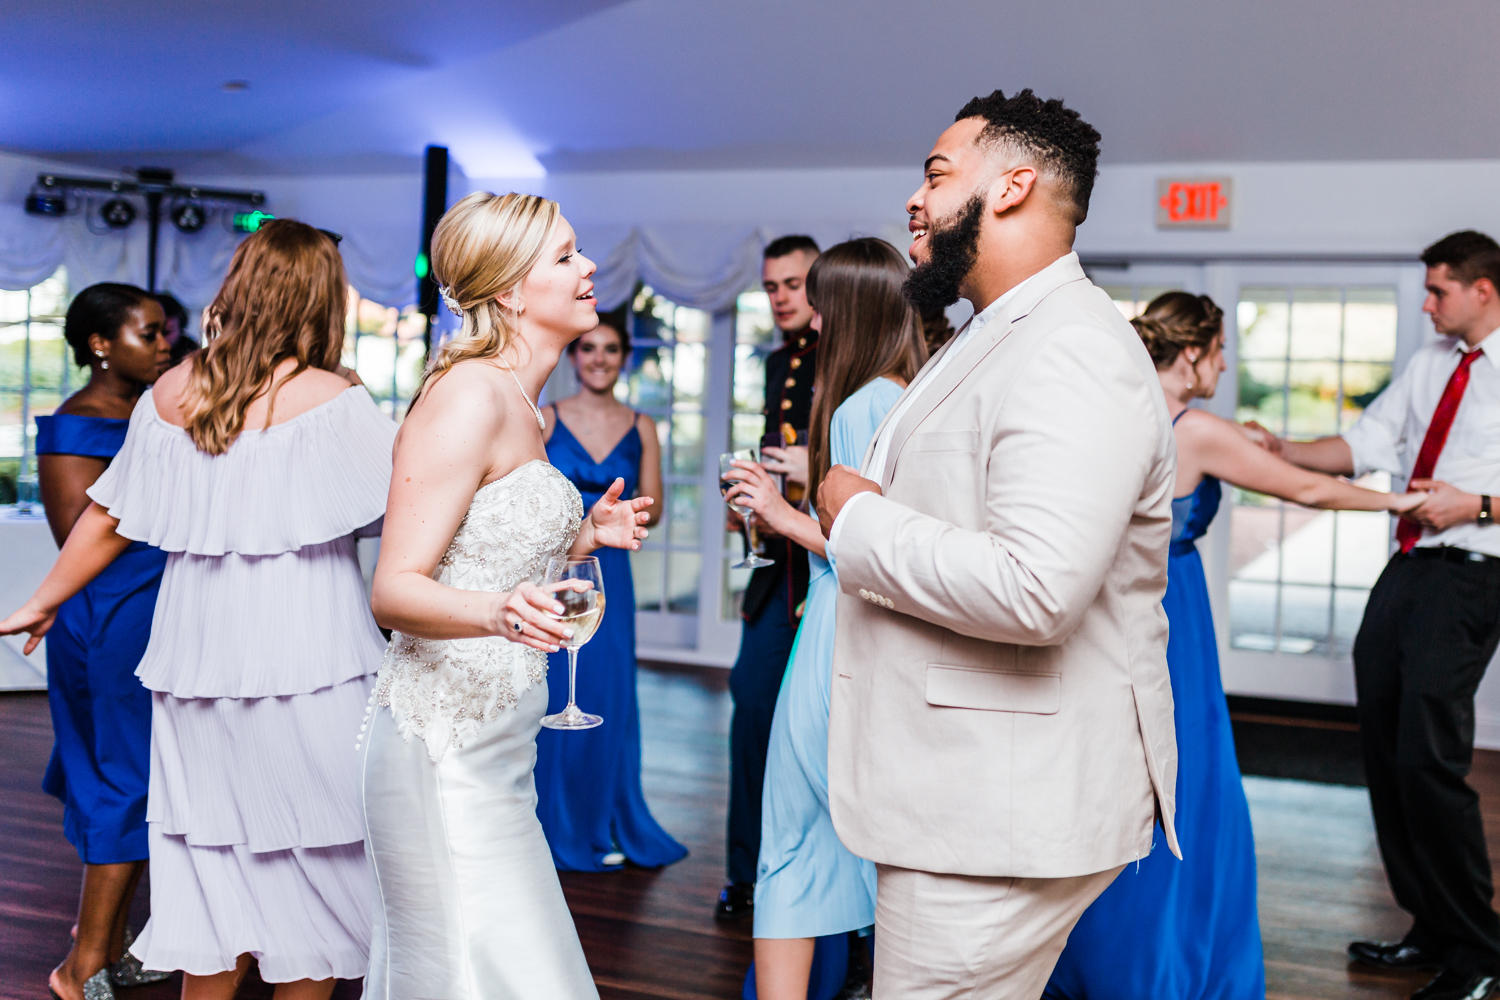 bride dancing with friend at wedding reception - taneytown maryland